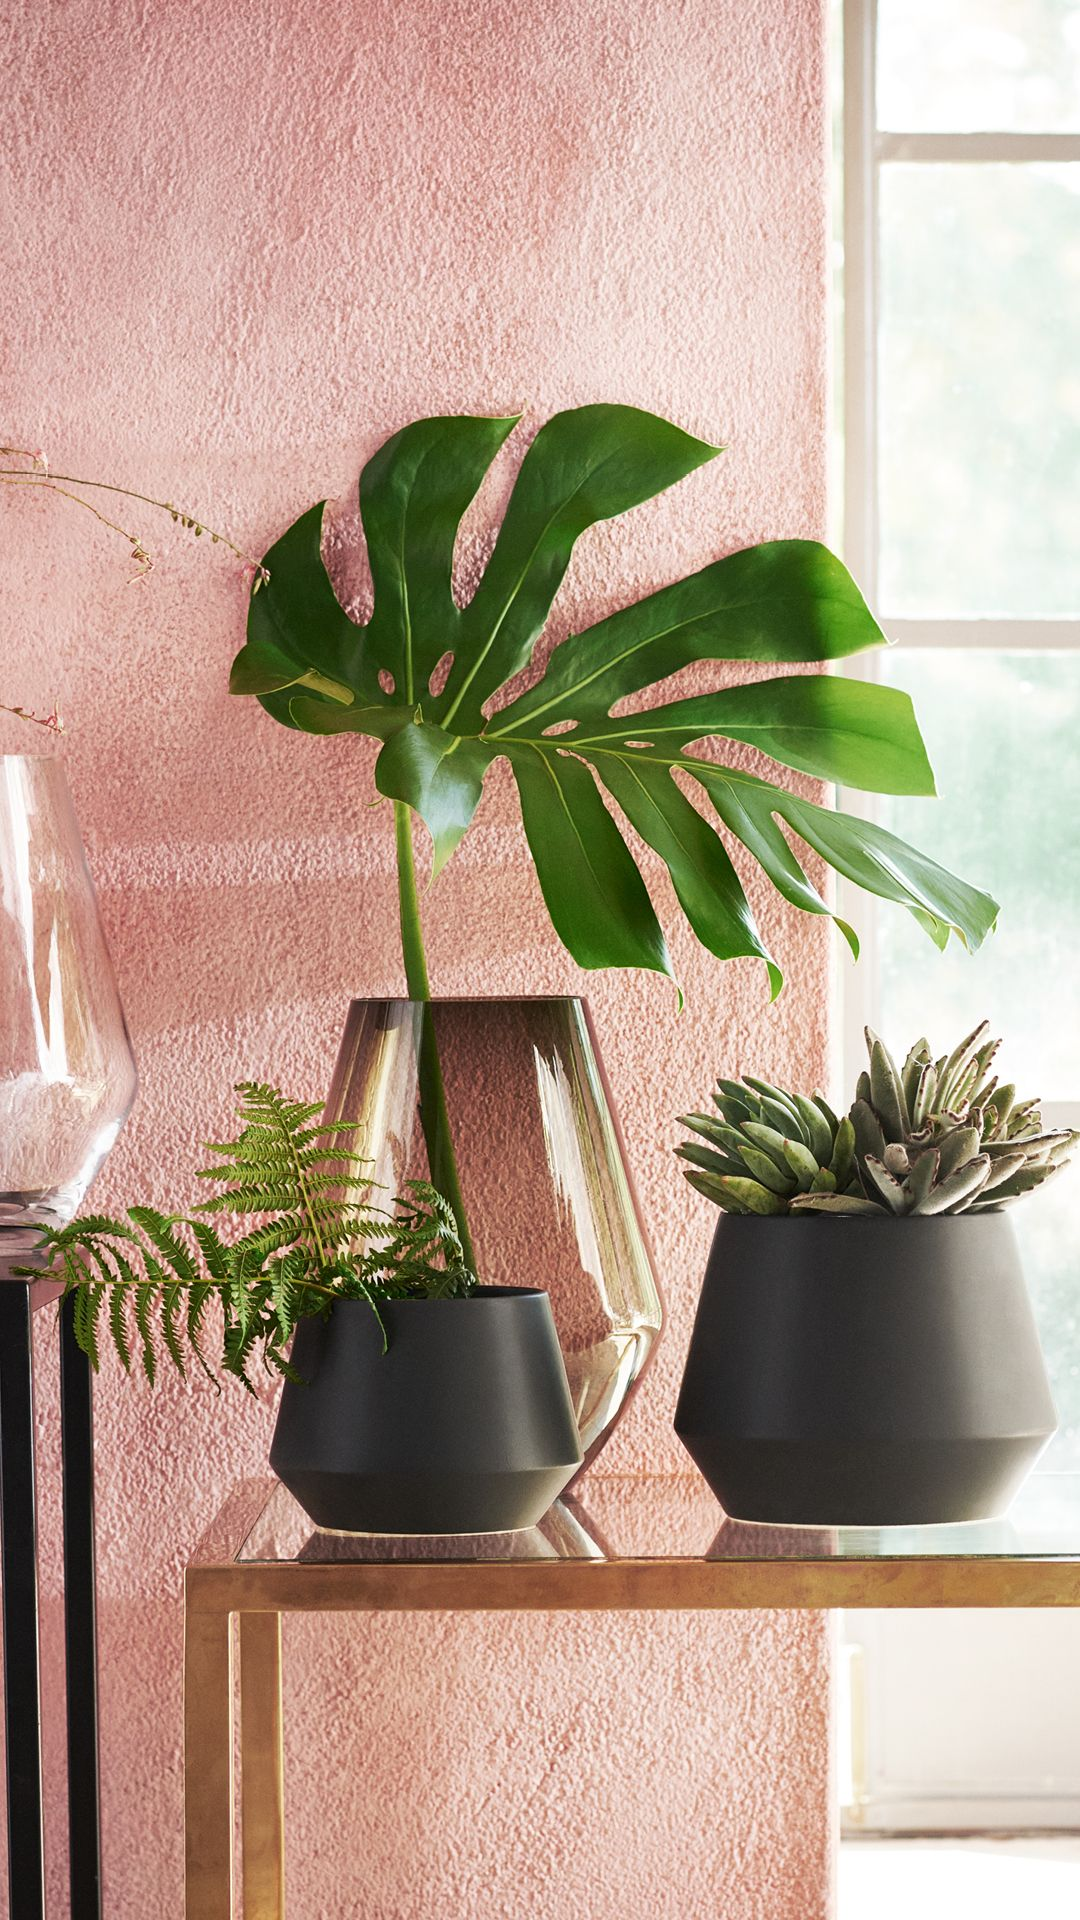 Etonnant Bring Nature Inside With Our Beautiful Selection Of Pots And Vases.   Hu0026M  Home